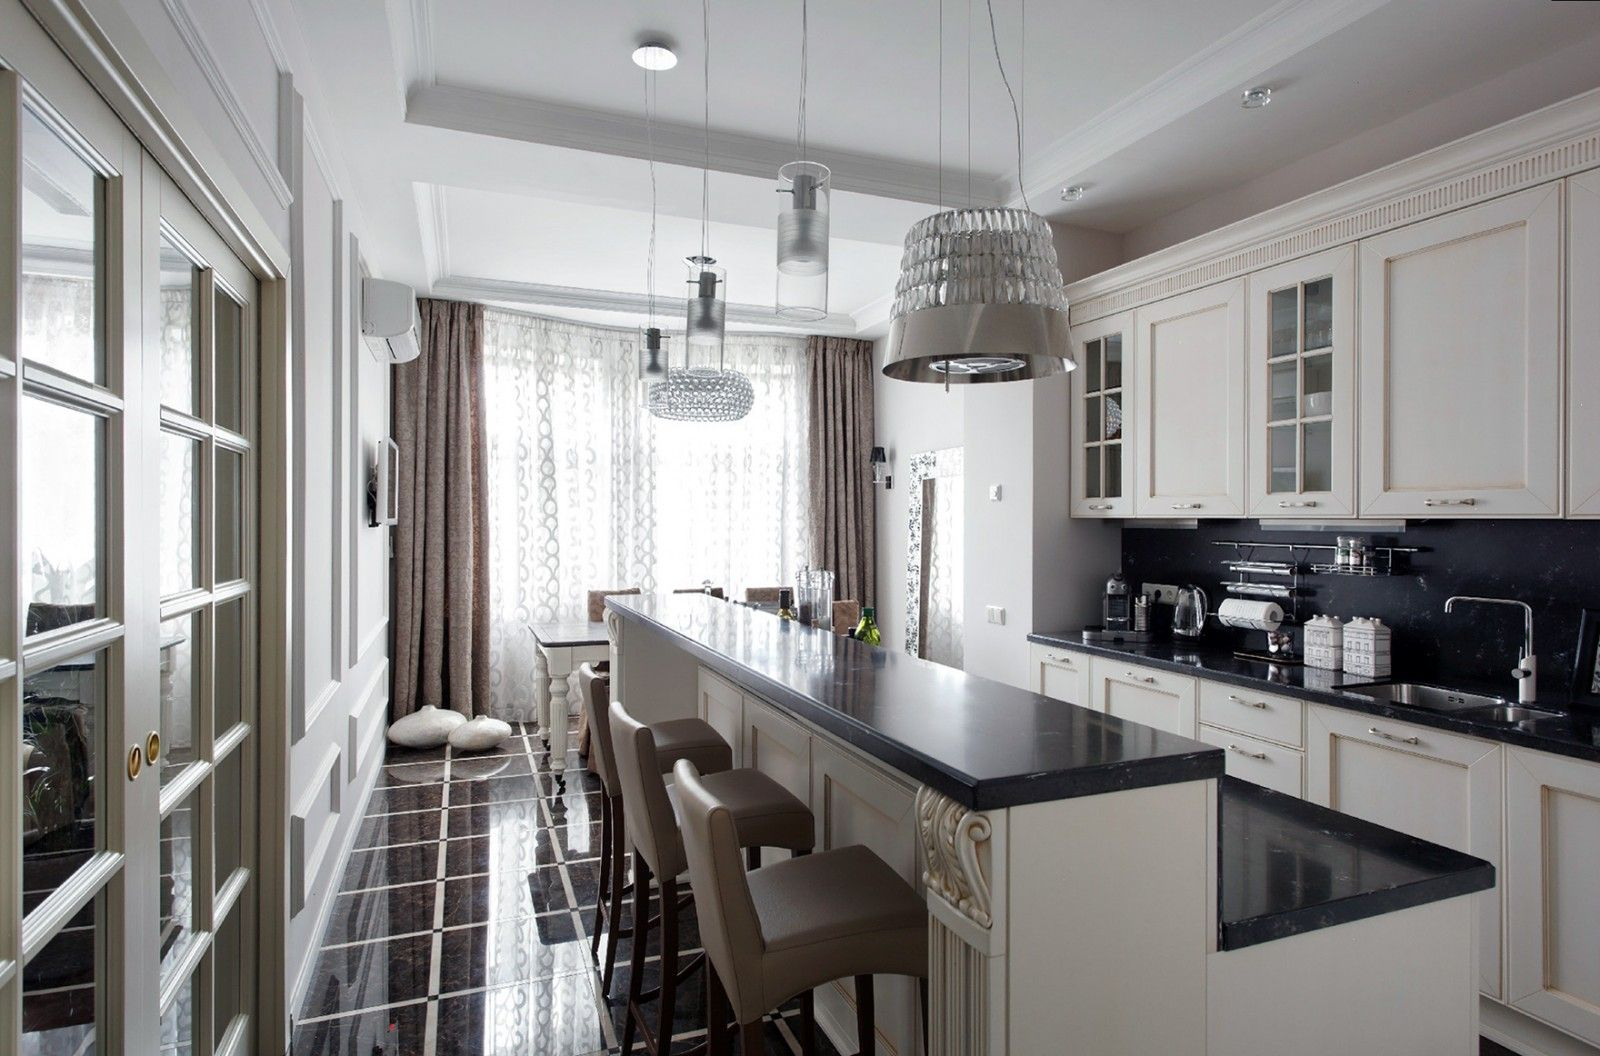 Modern minimalistic style with glancing floor tile and large kitchen island in the center